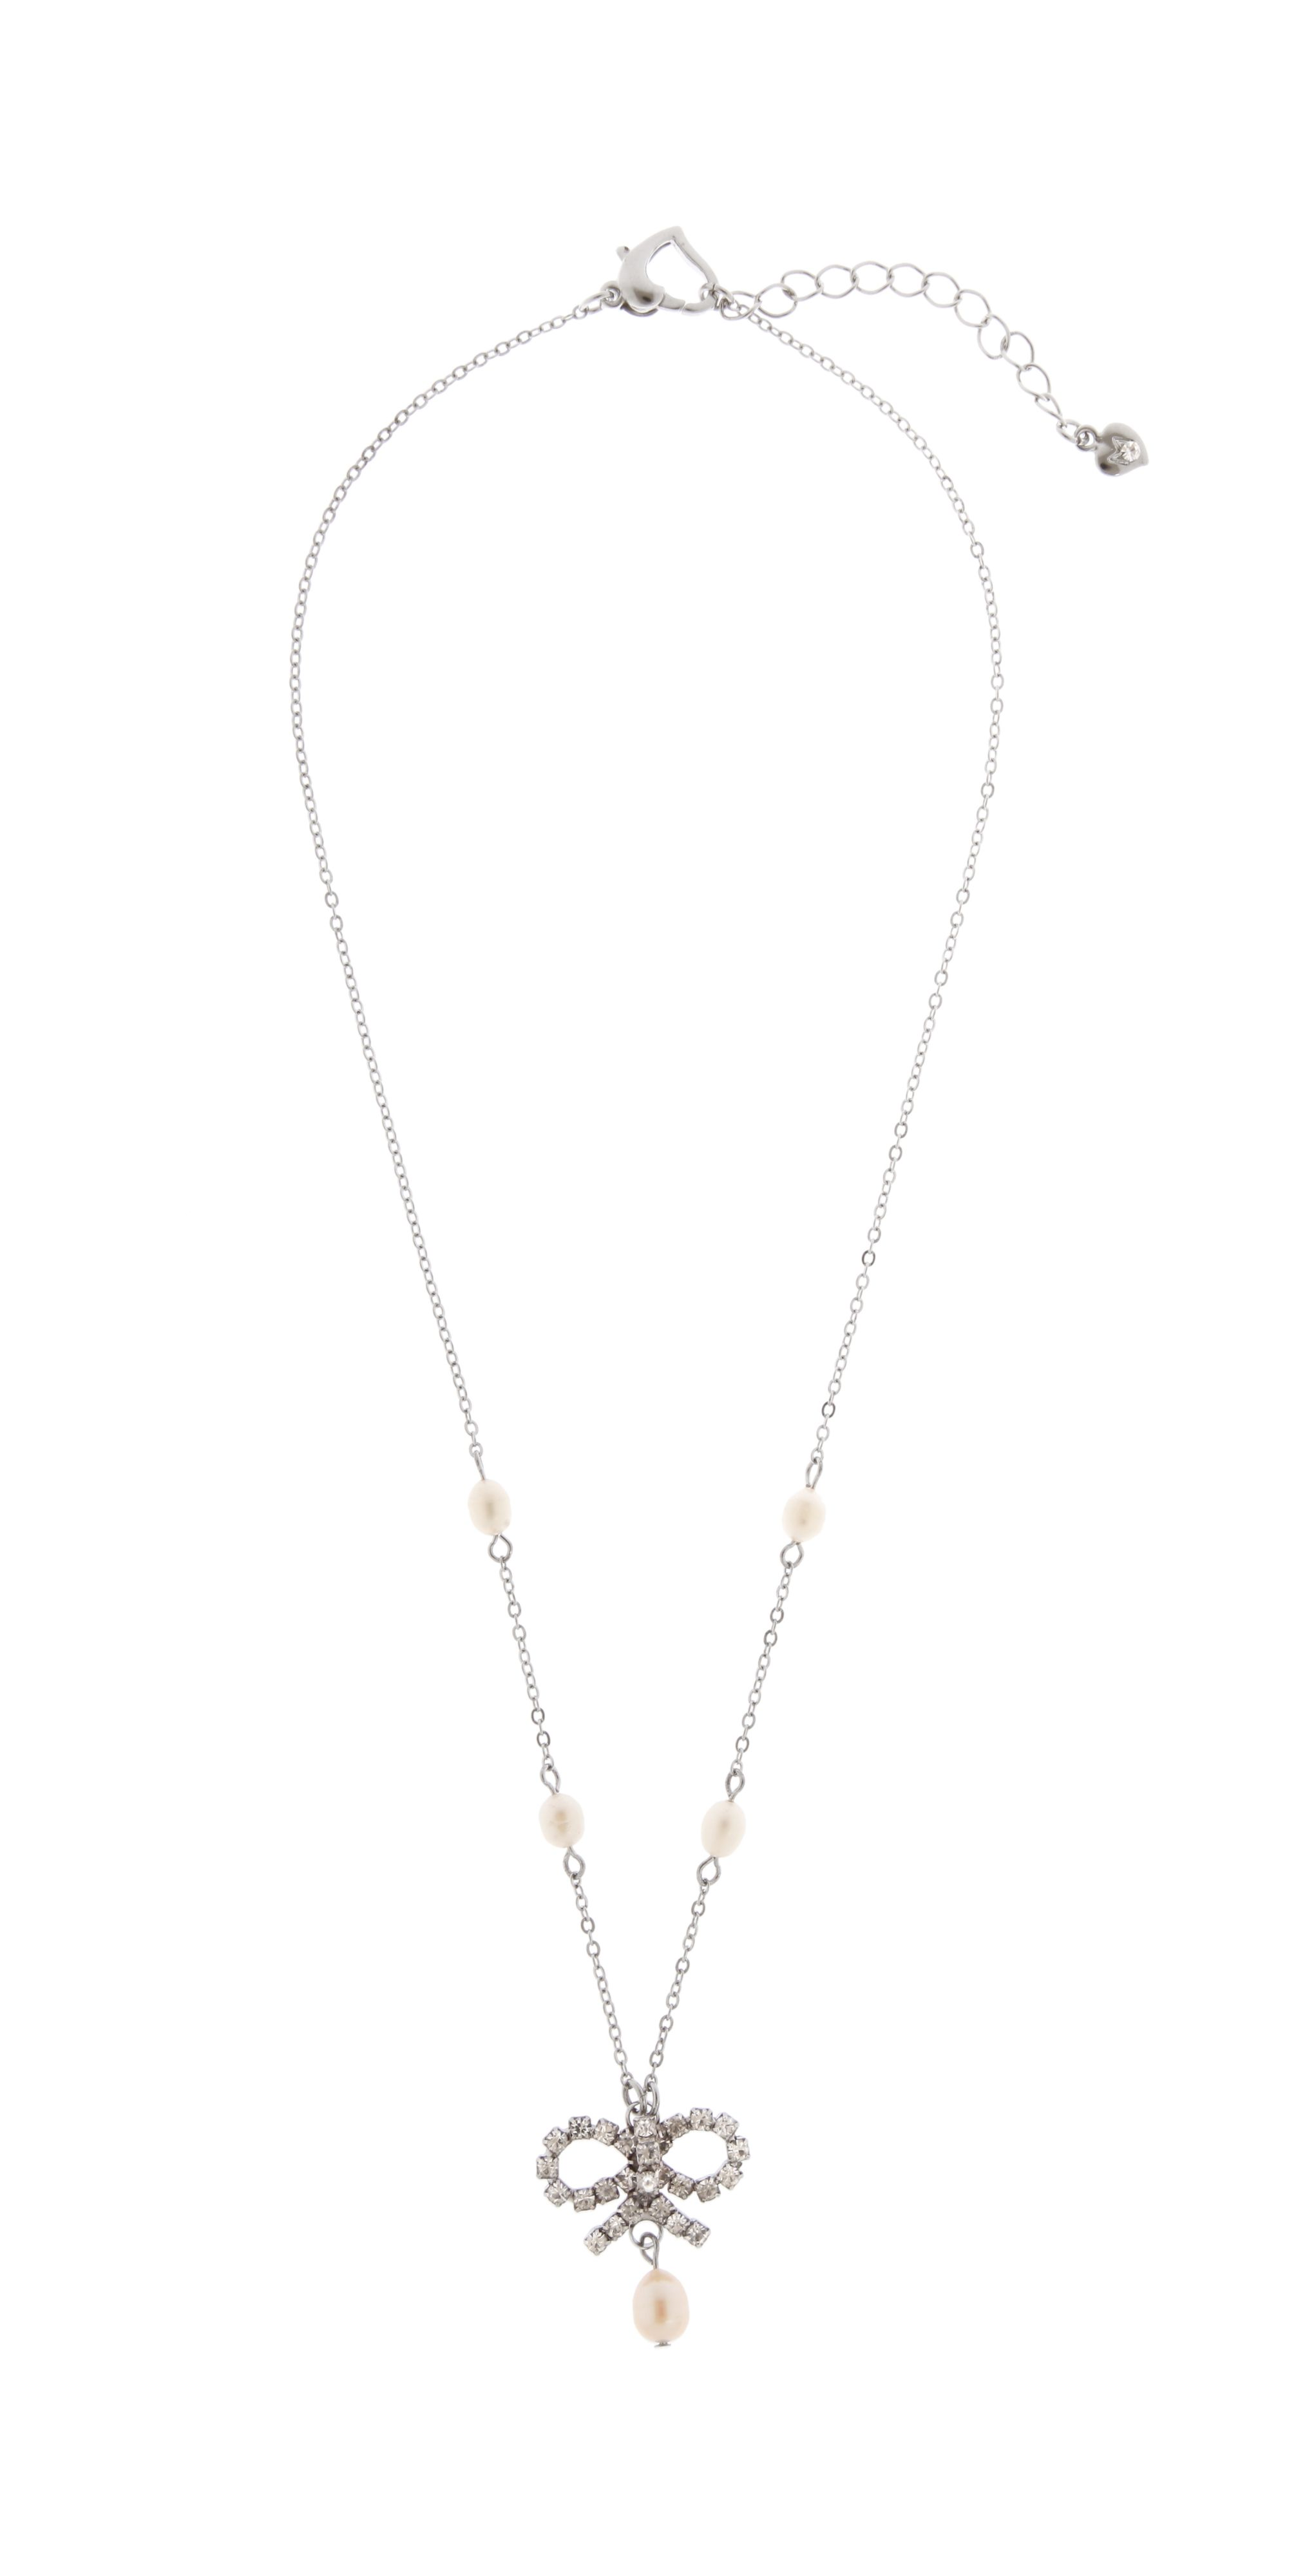 Delicate Chain Necklace With Bow Detail